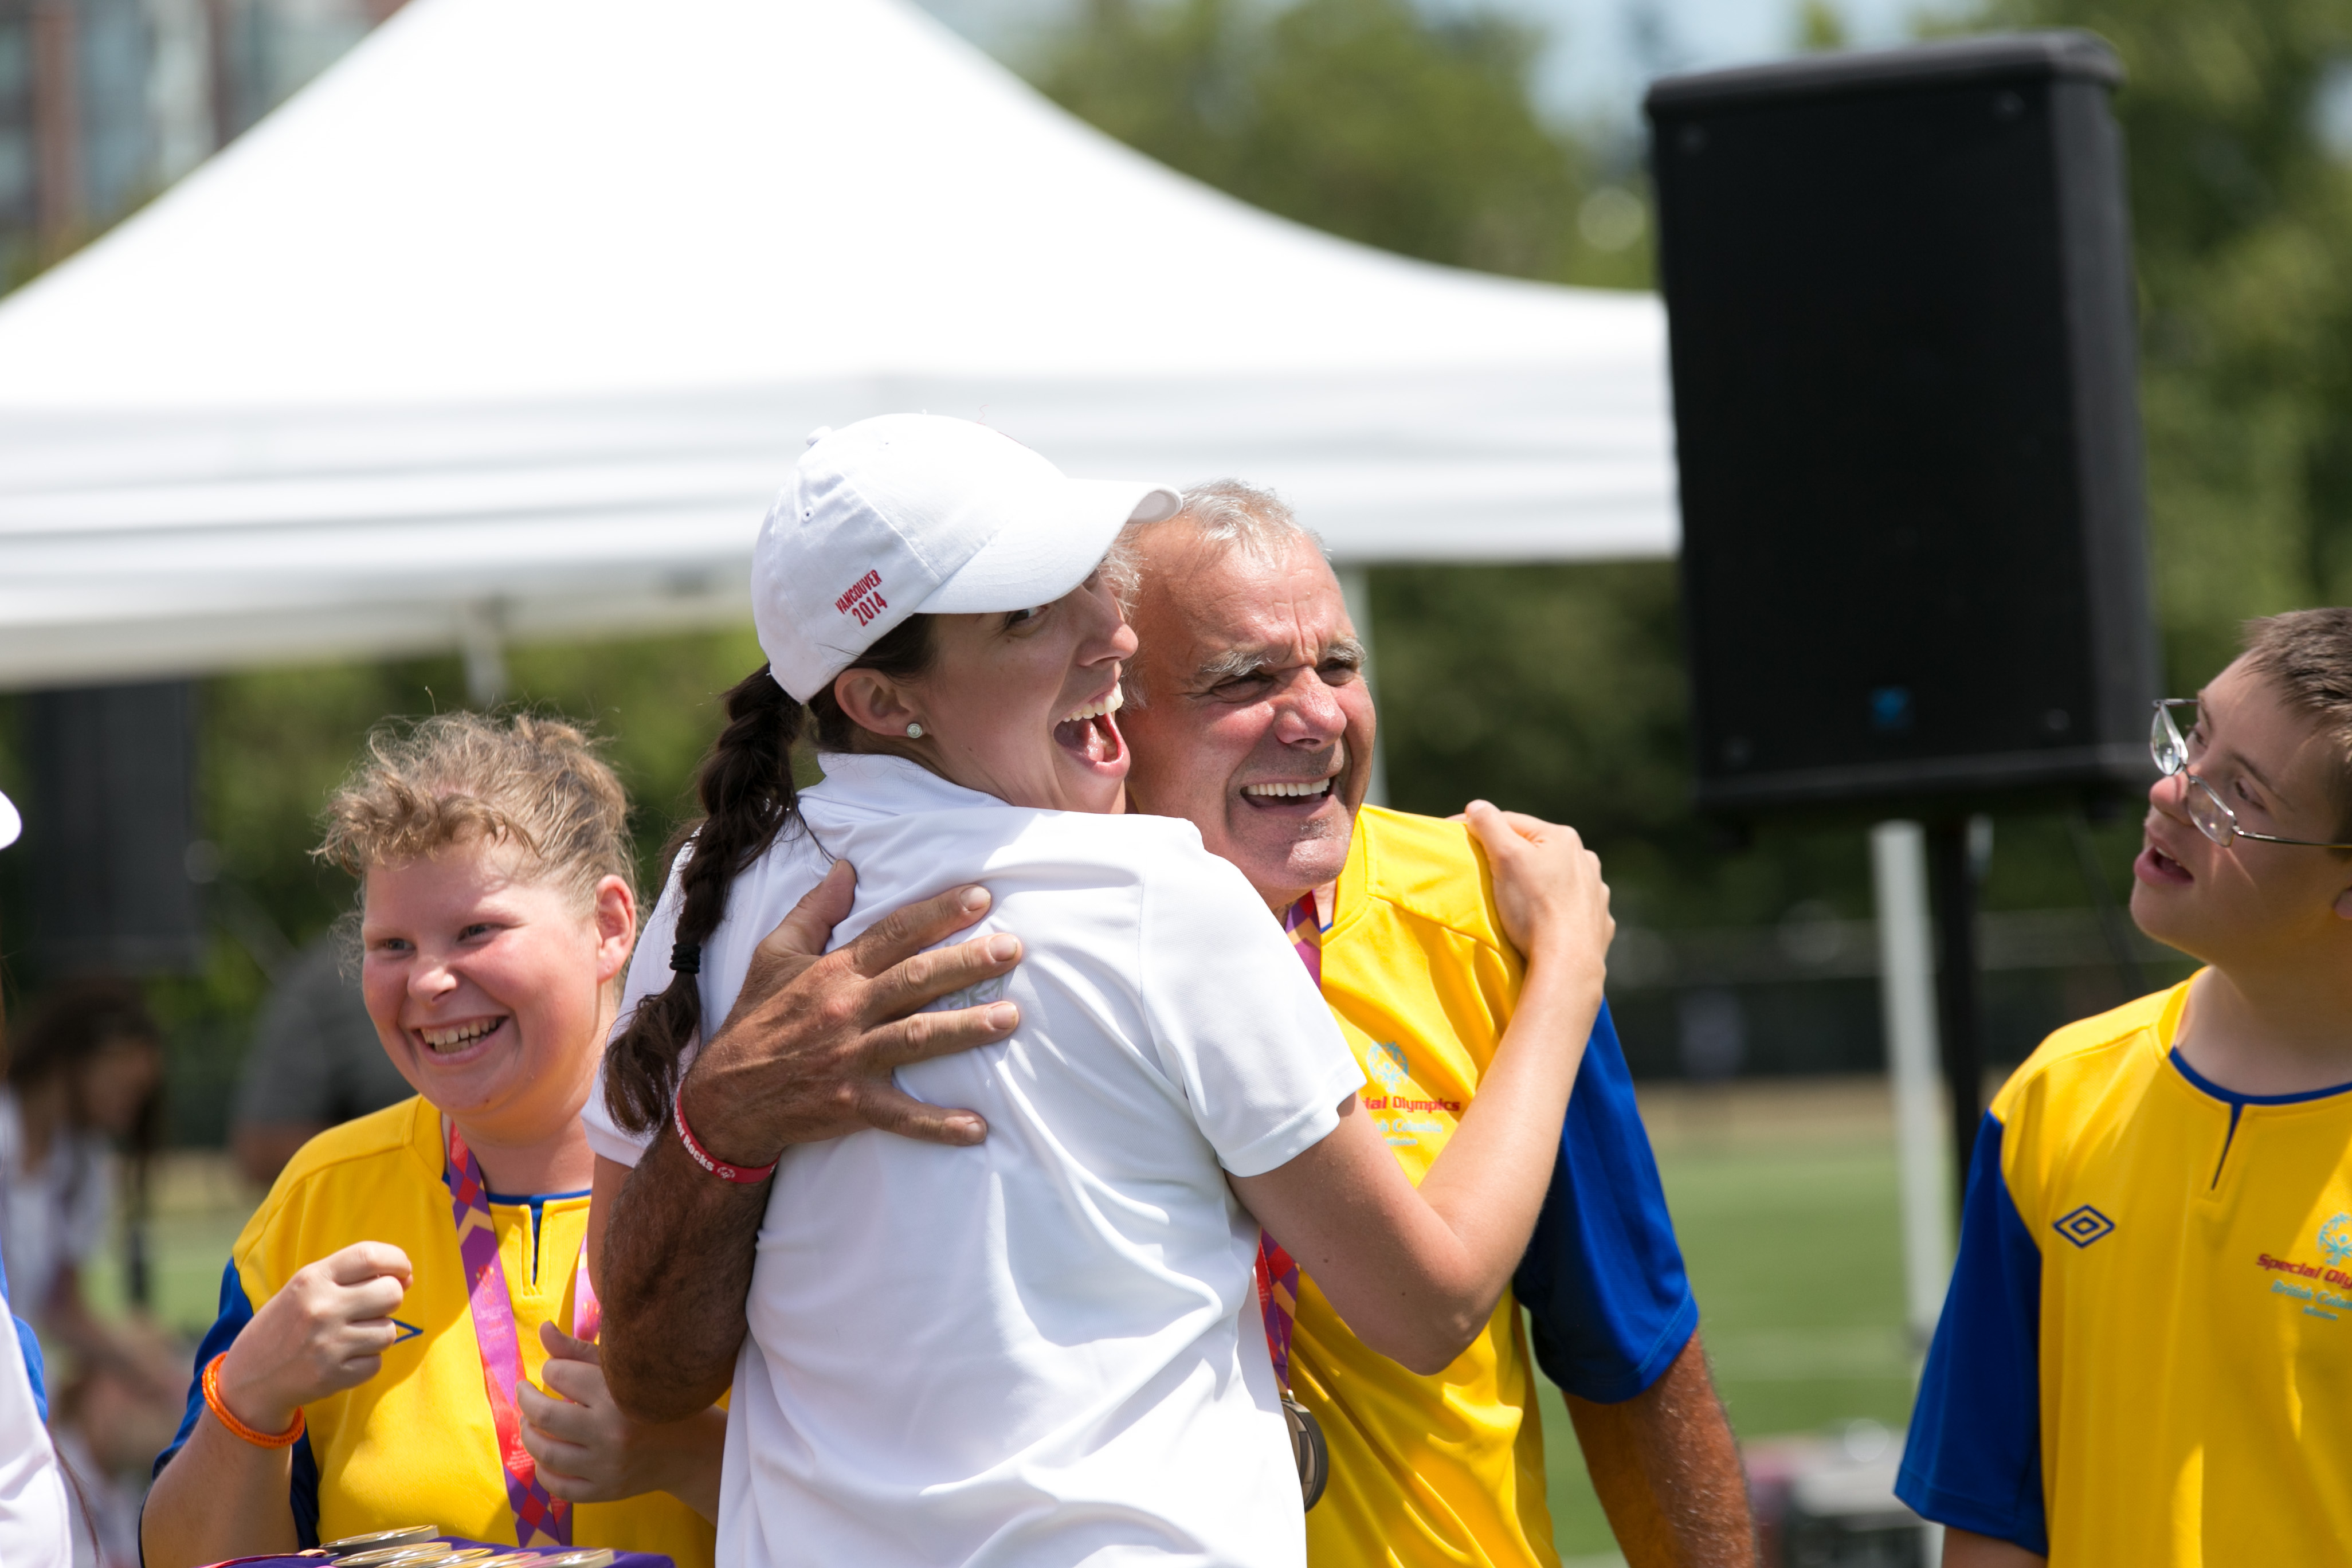 volunteer and athlete hugging